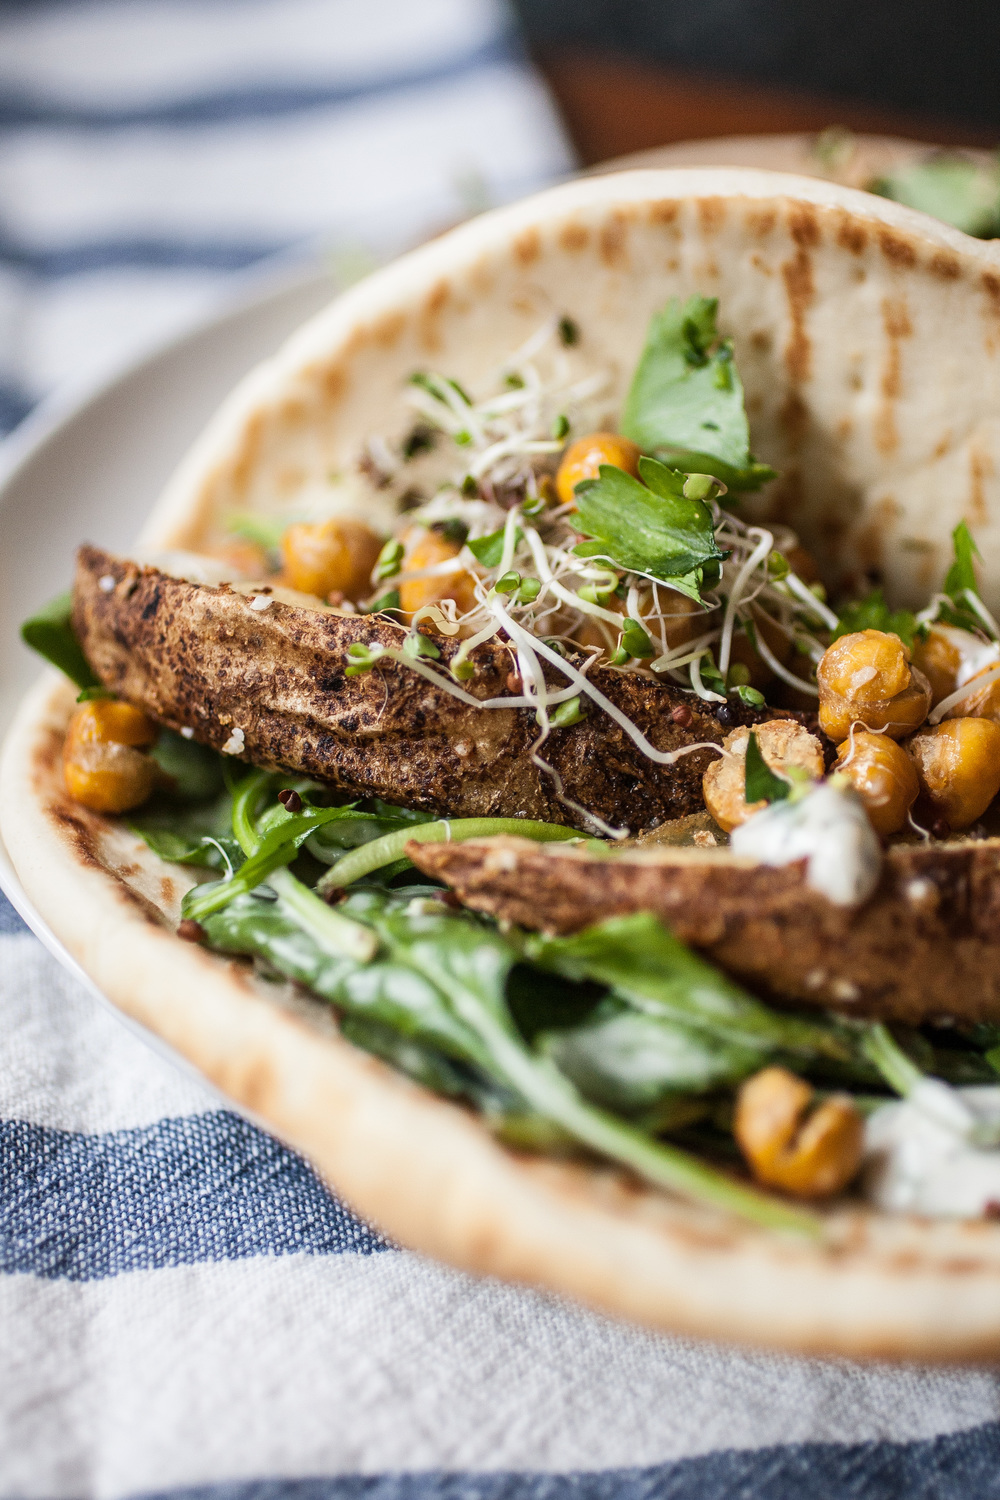 Produce On Parade- Ranch Pitas w/ Roasted Potatoes & Chickpeas - This is a super easy and perfect way to use up those russet potatoes you found in the back of the cupboard that might have started sprouting (guilty!) The roasted chickpeas add a wonderful little crunch, and the homemade ranch dressing lends a nostalgic creaminess, all cozied up in a soft, warm pita!